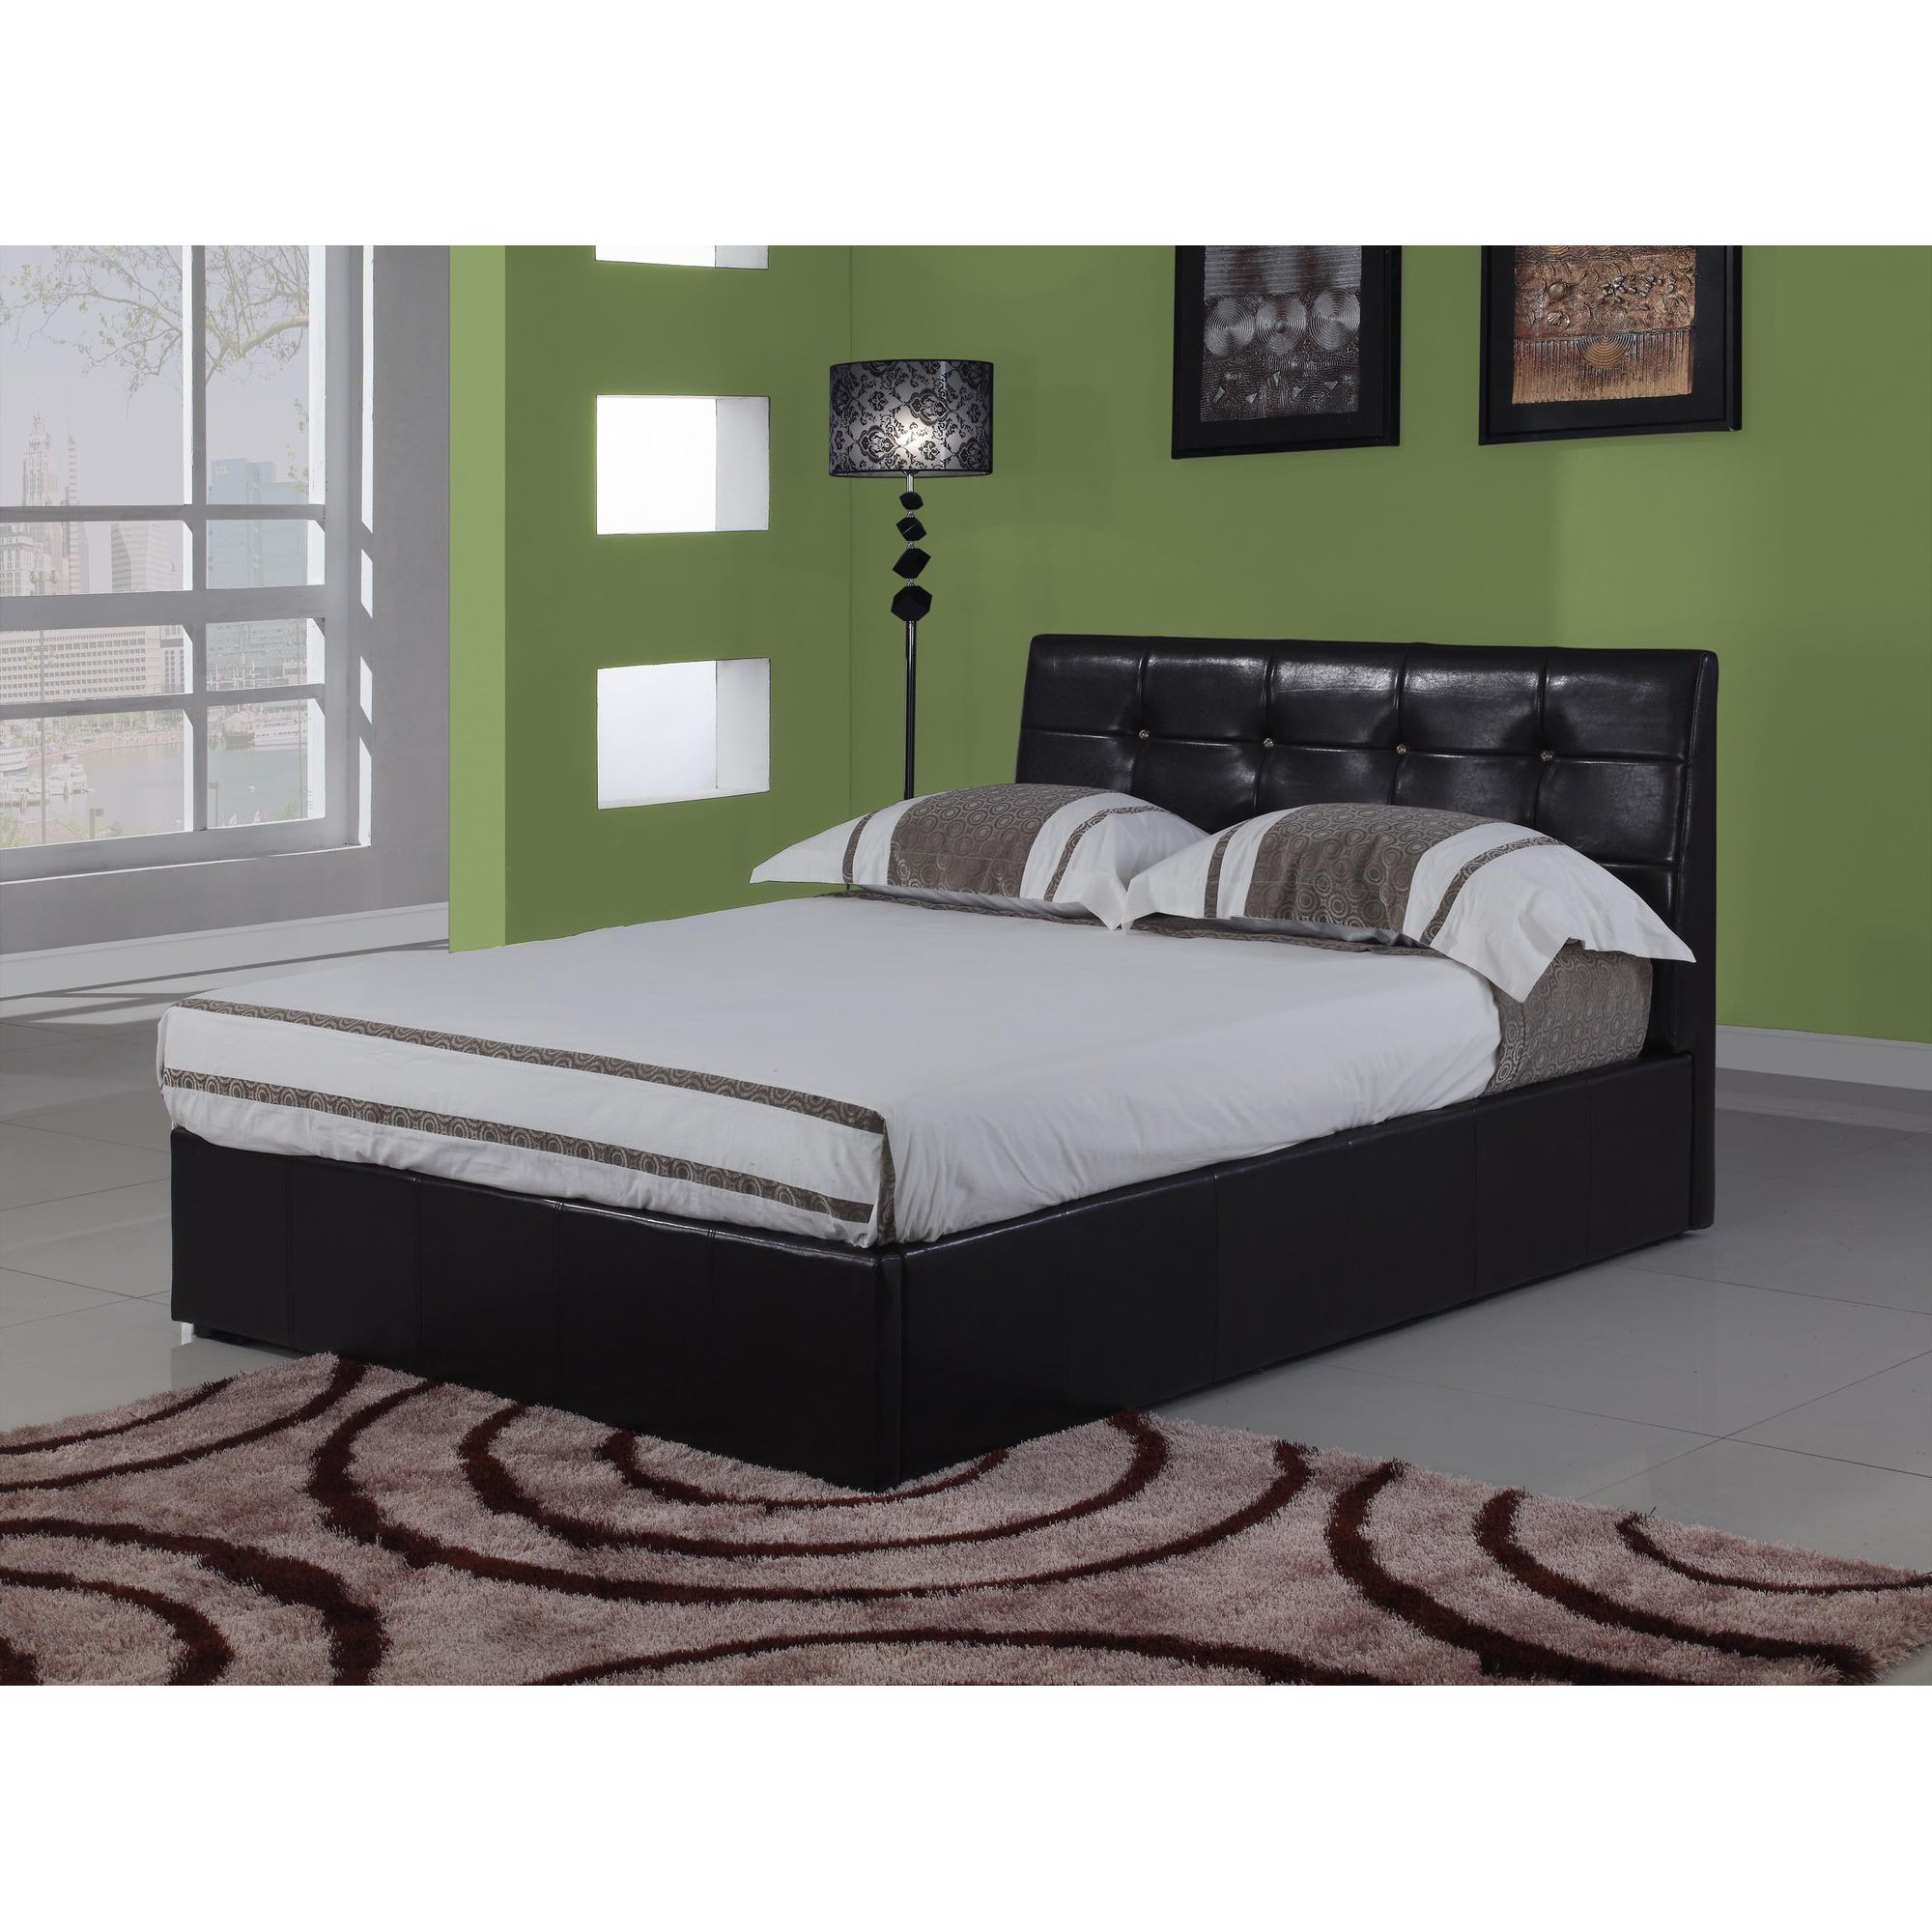 Interiors 2 suit Modena Bedframe - Brown - Double at Tesco Direct